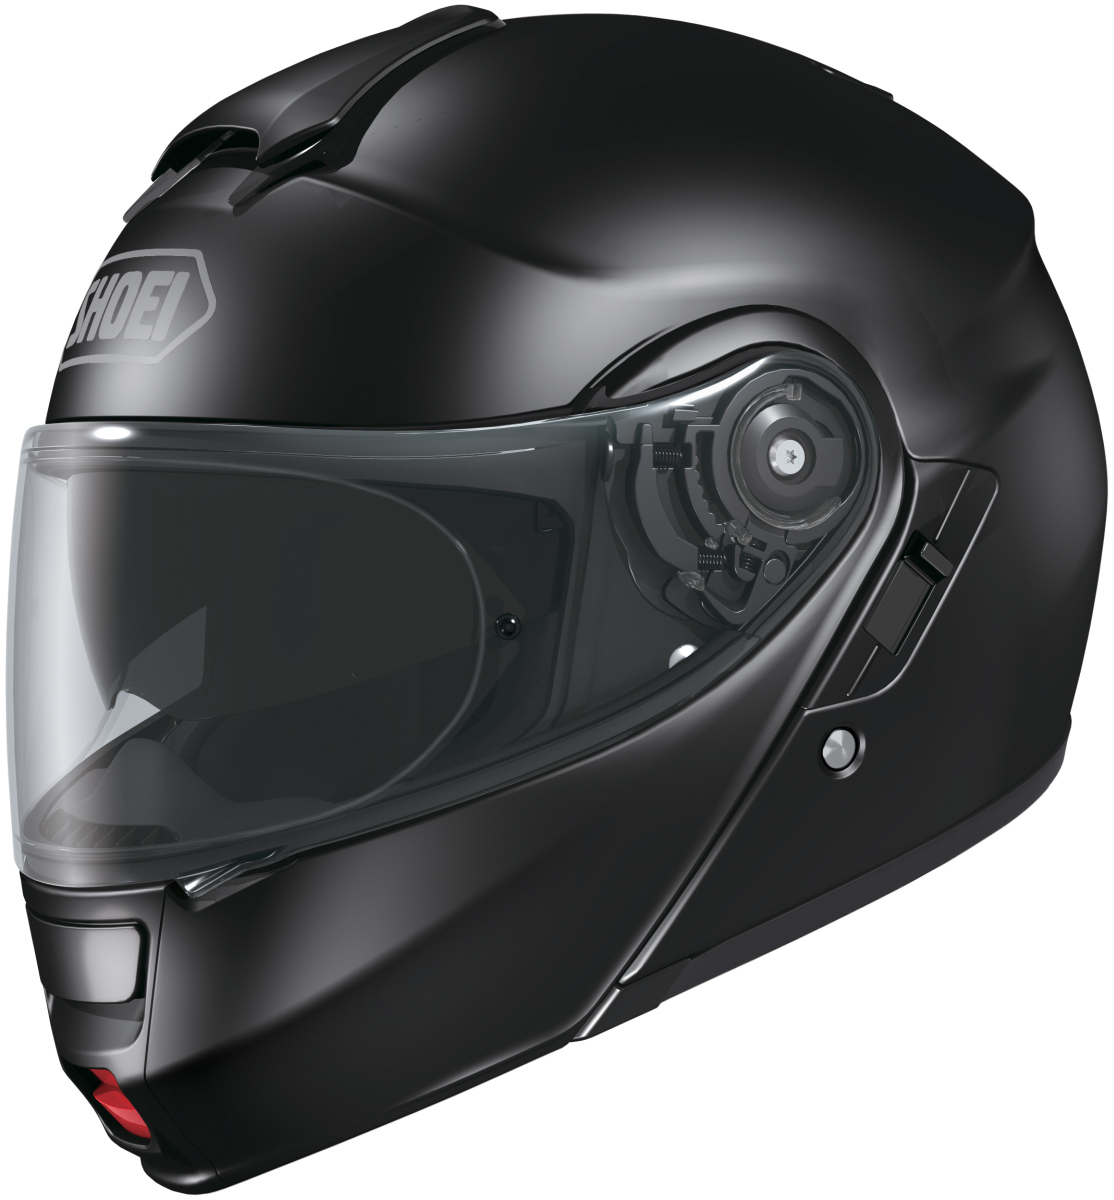 NEOTEC SOLID-Shoei